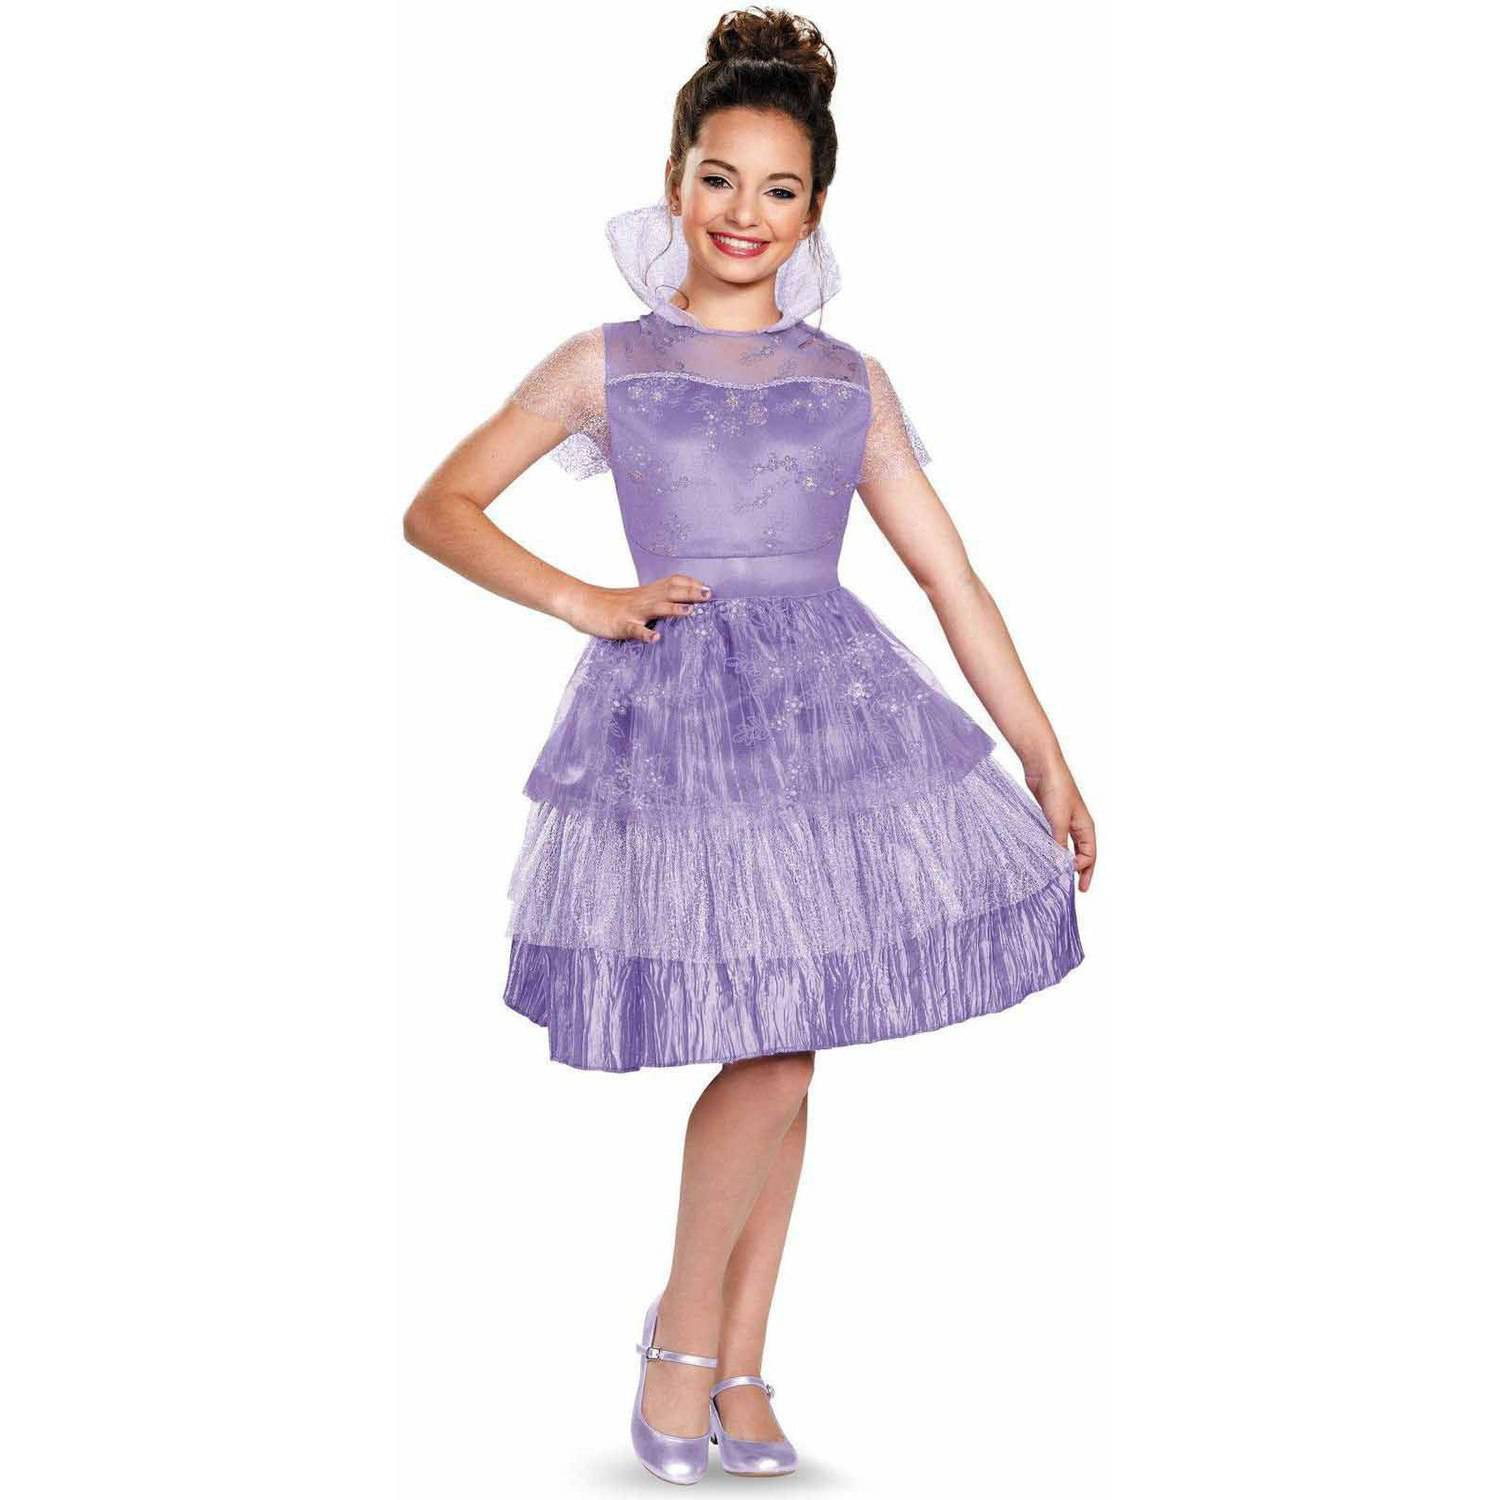 All Children's Halloween Costumes - Walmart.com